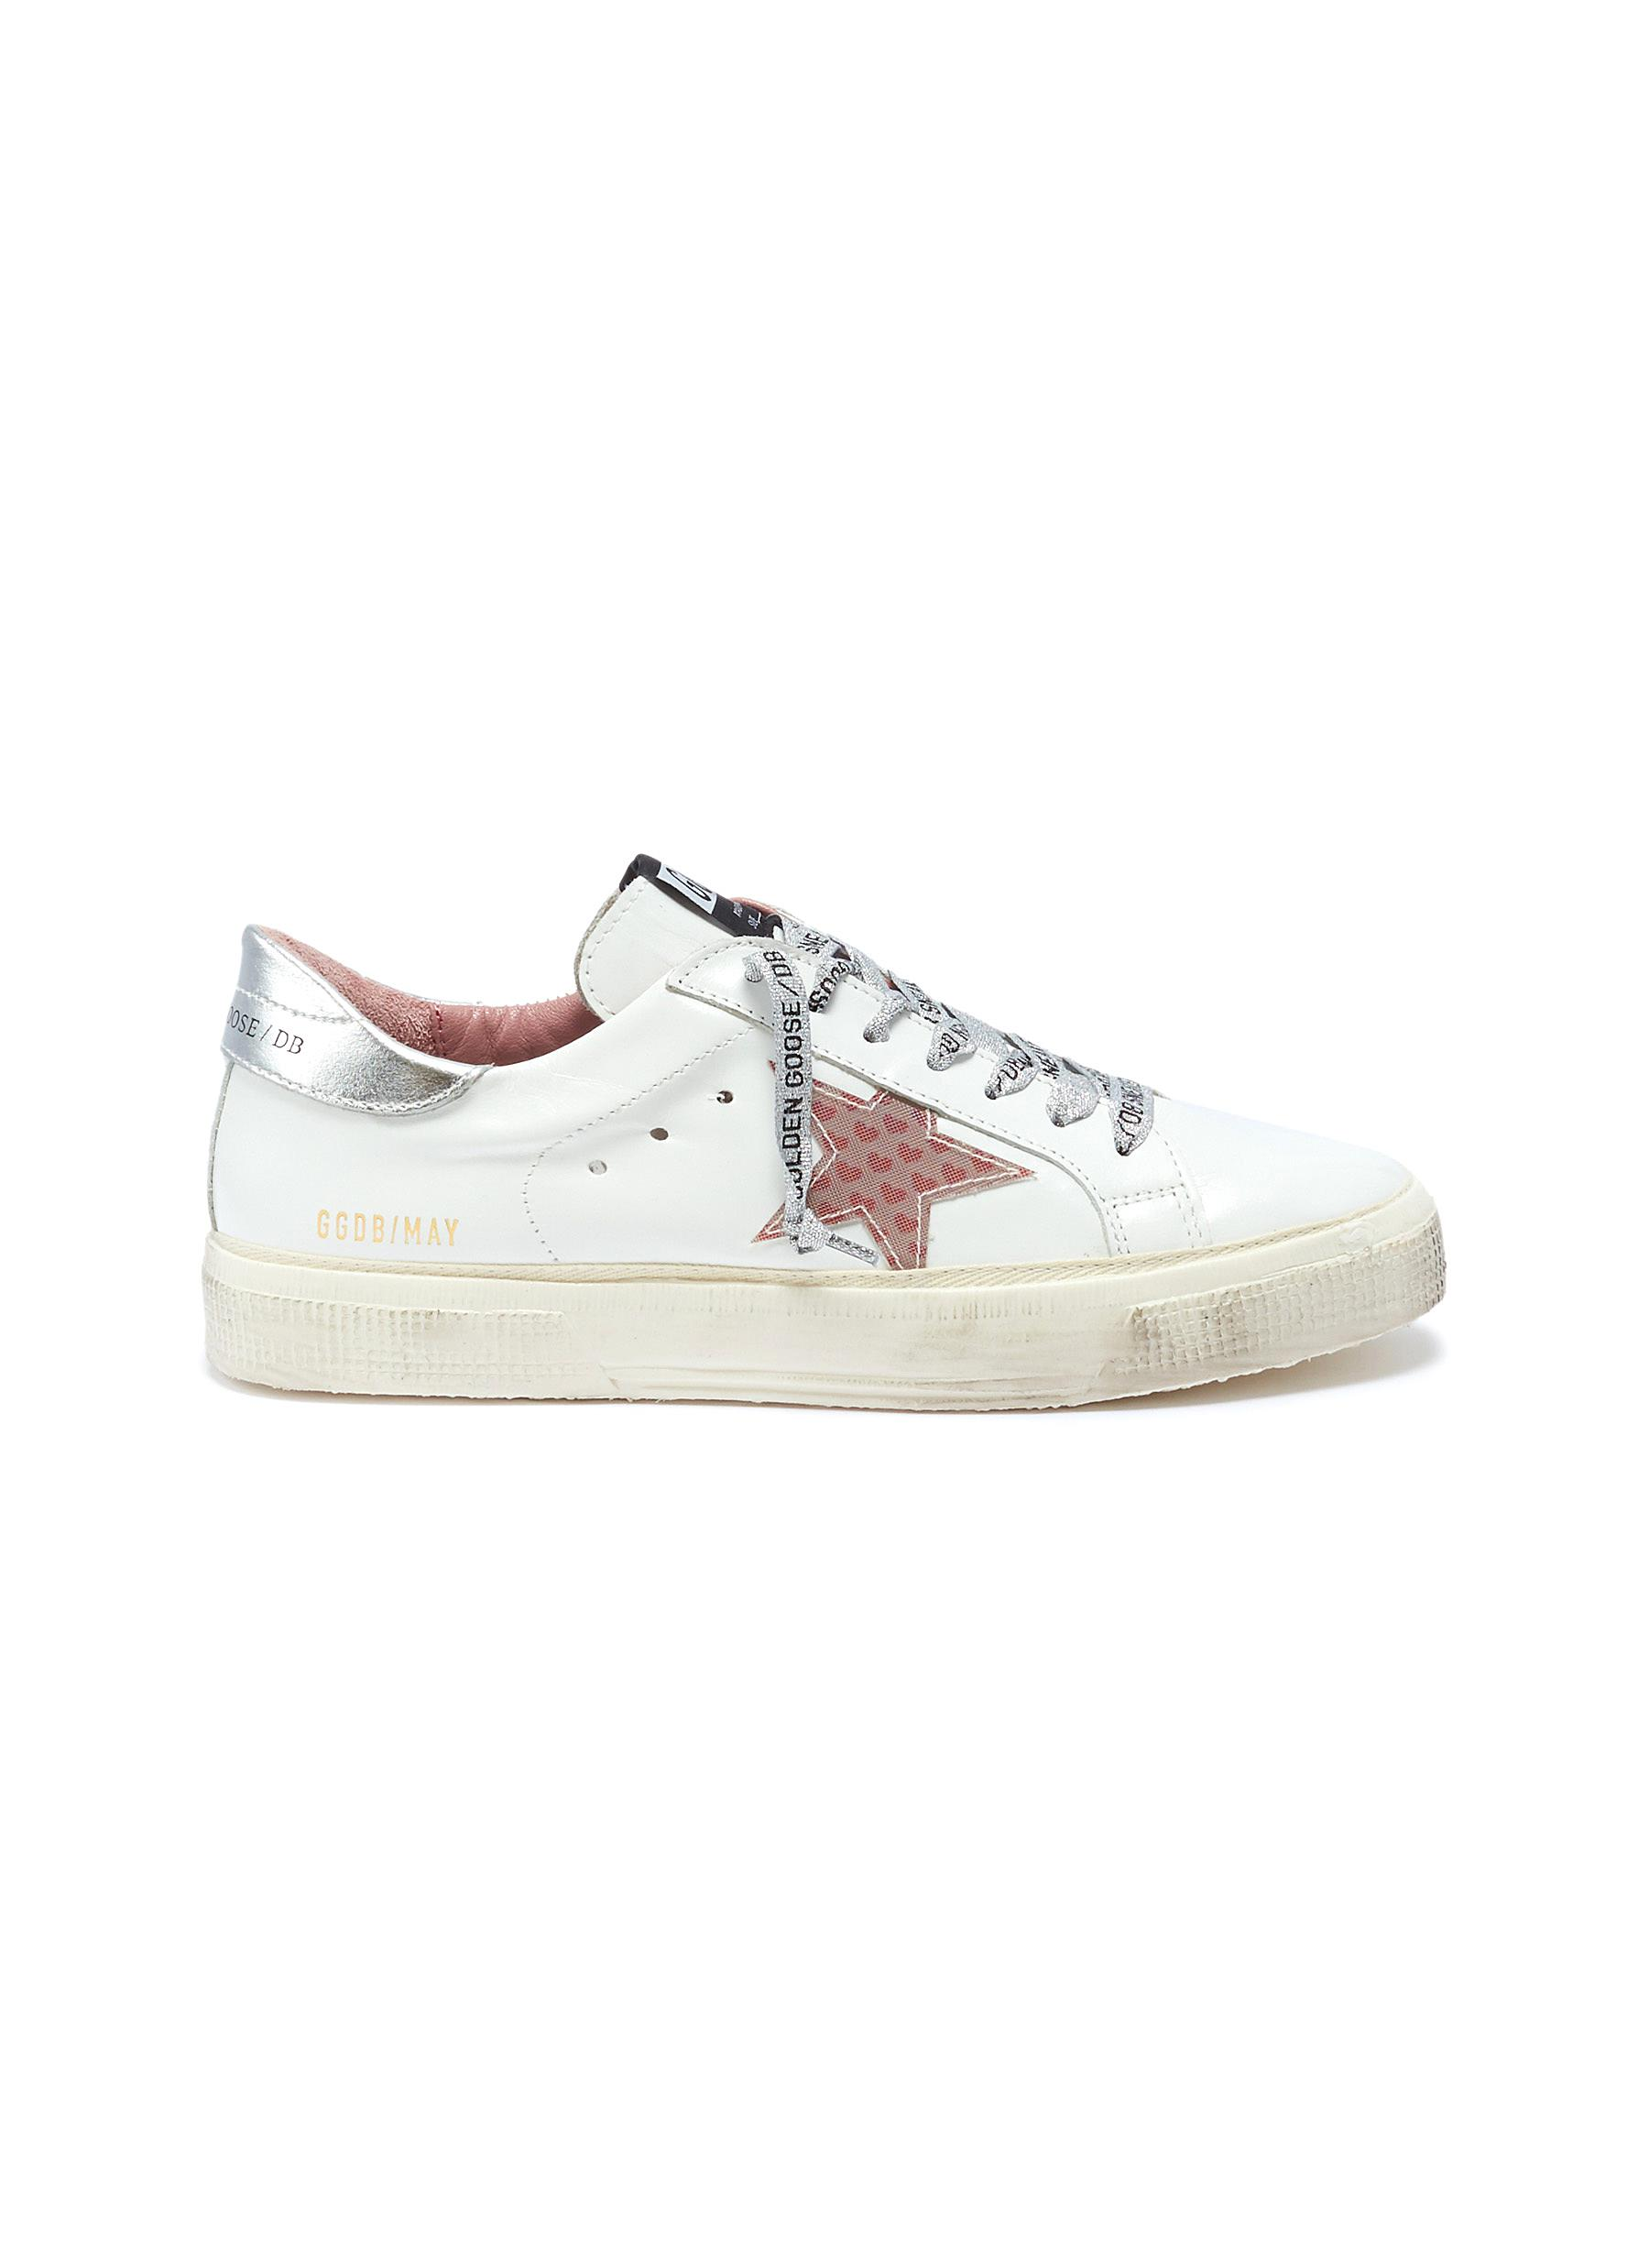 May heart print star patch leather sneakers by Golden Goose